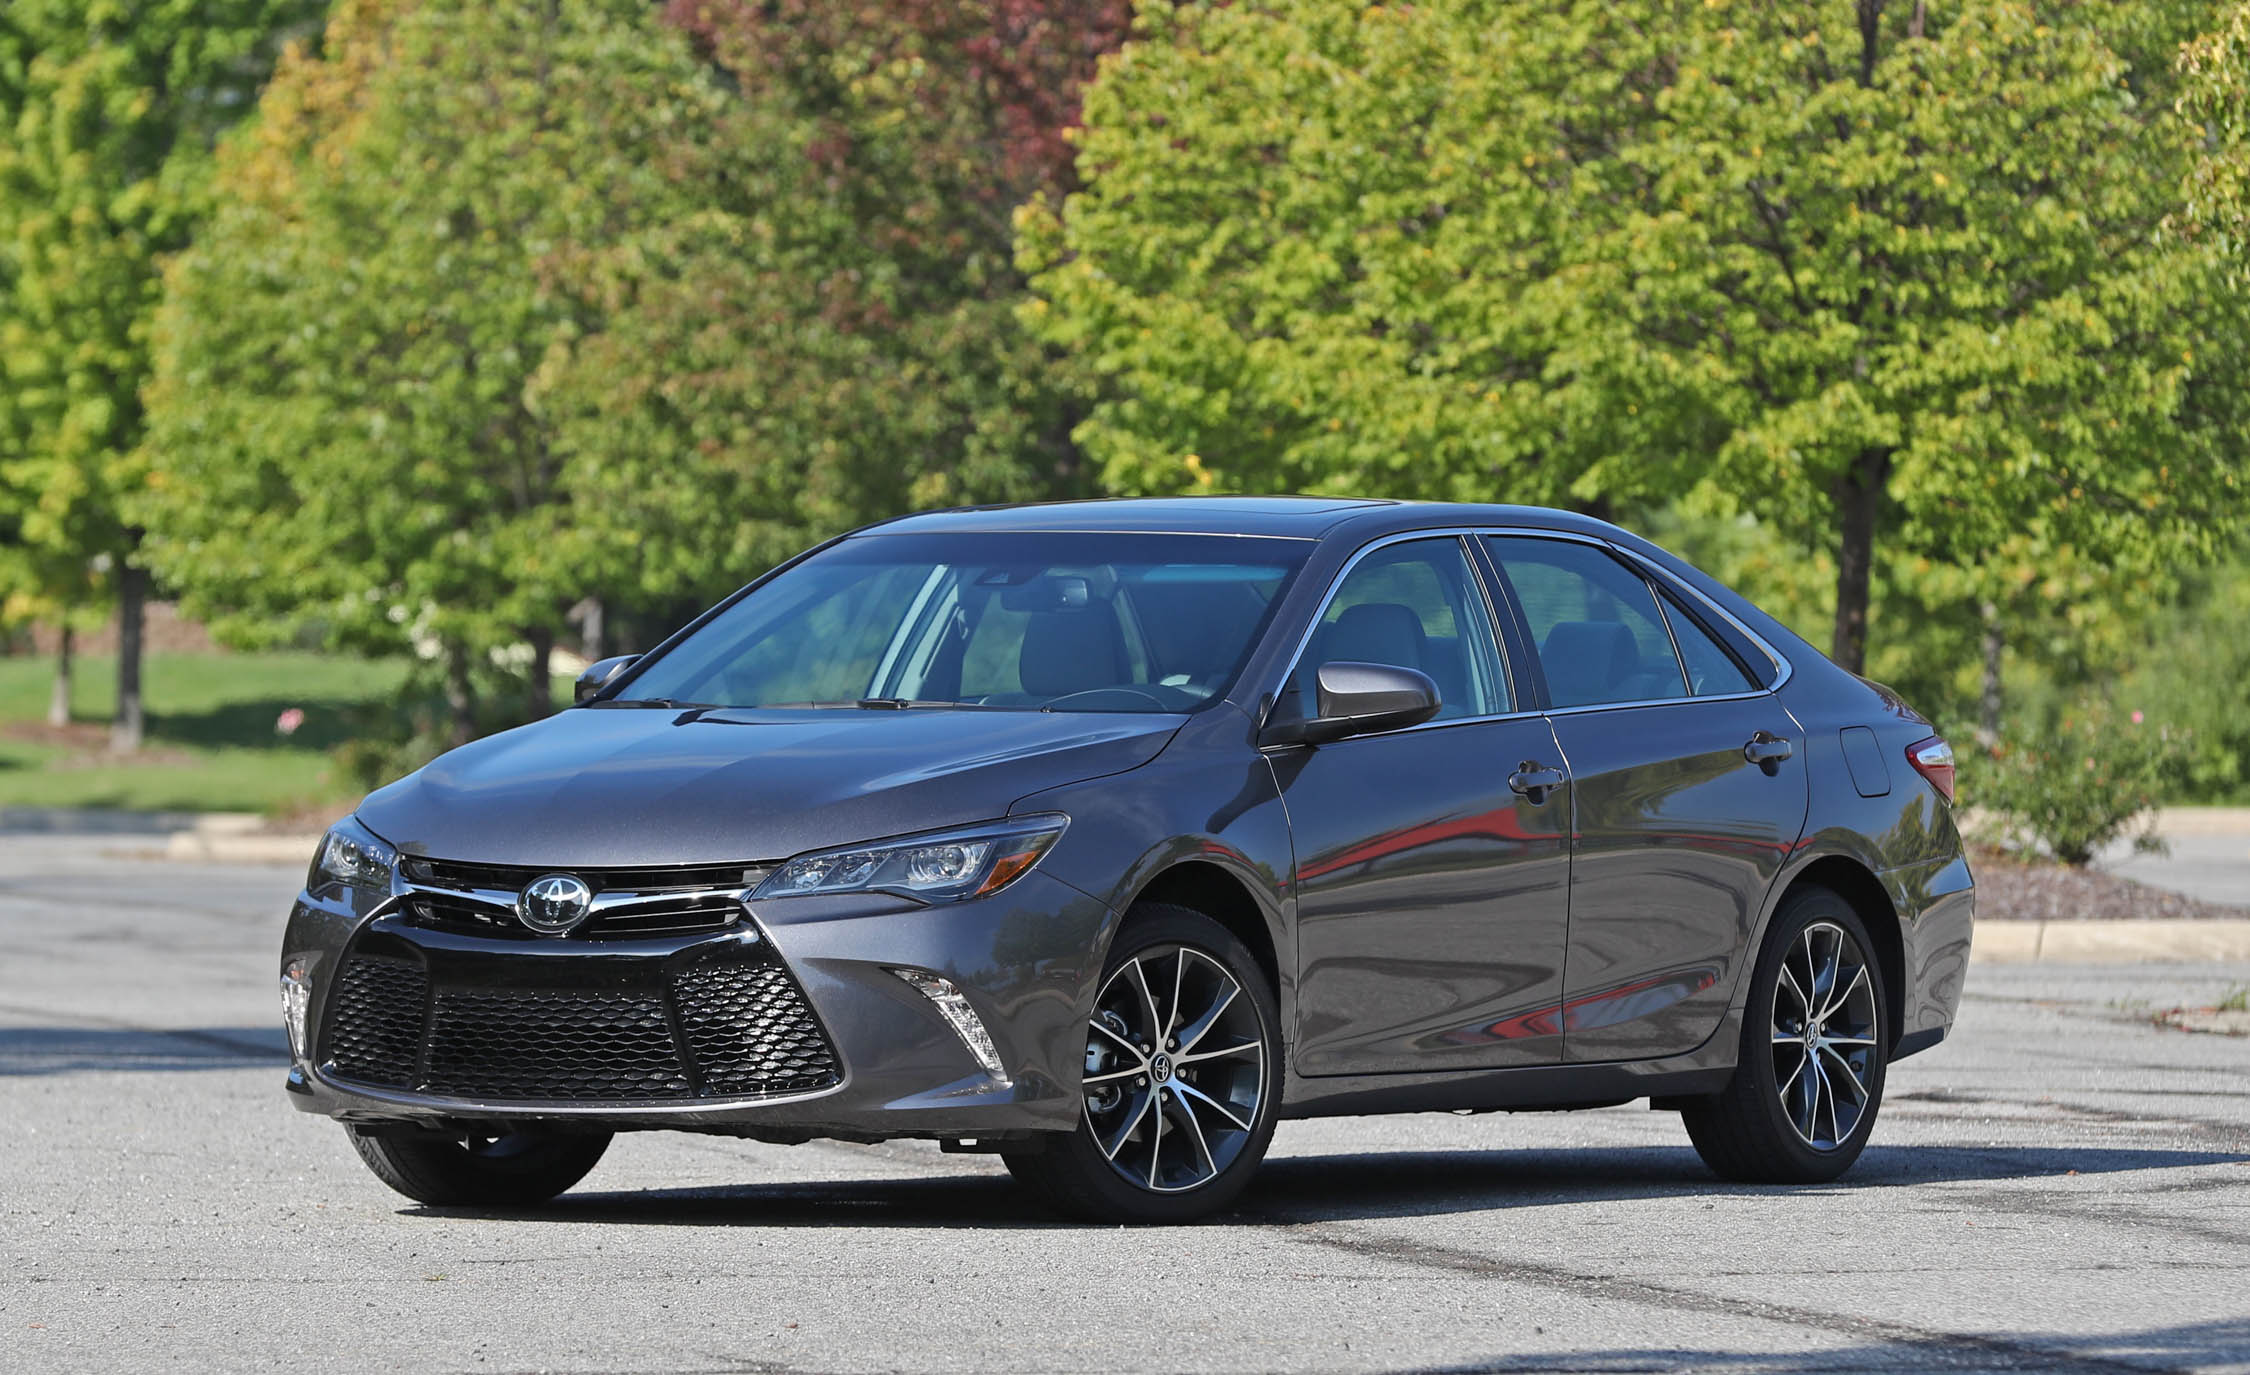 2017 Toyota Camry Exterior Front And Side (Photo 4 of 37)